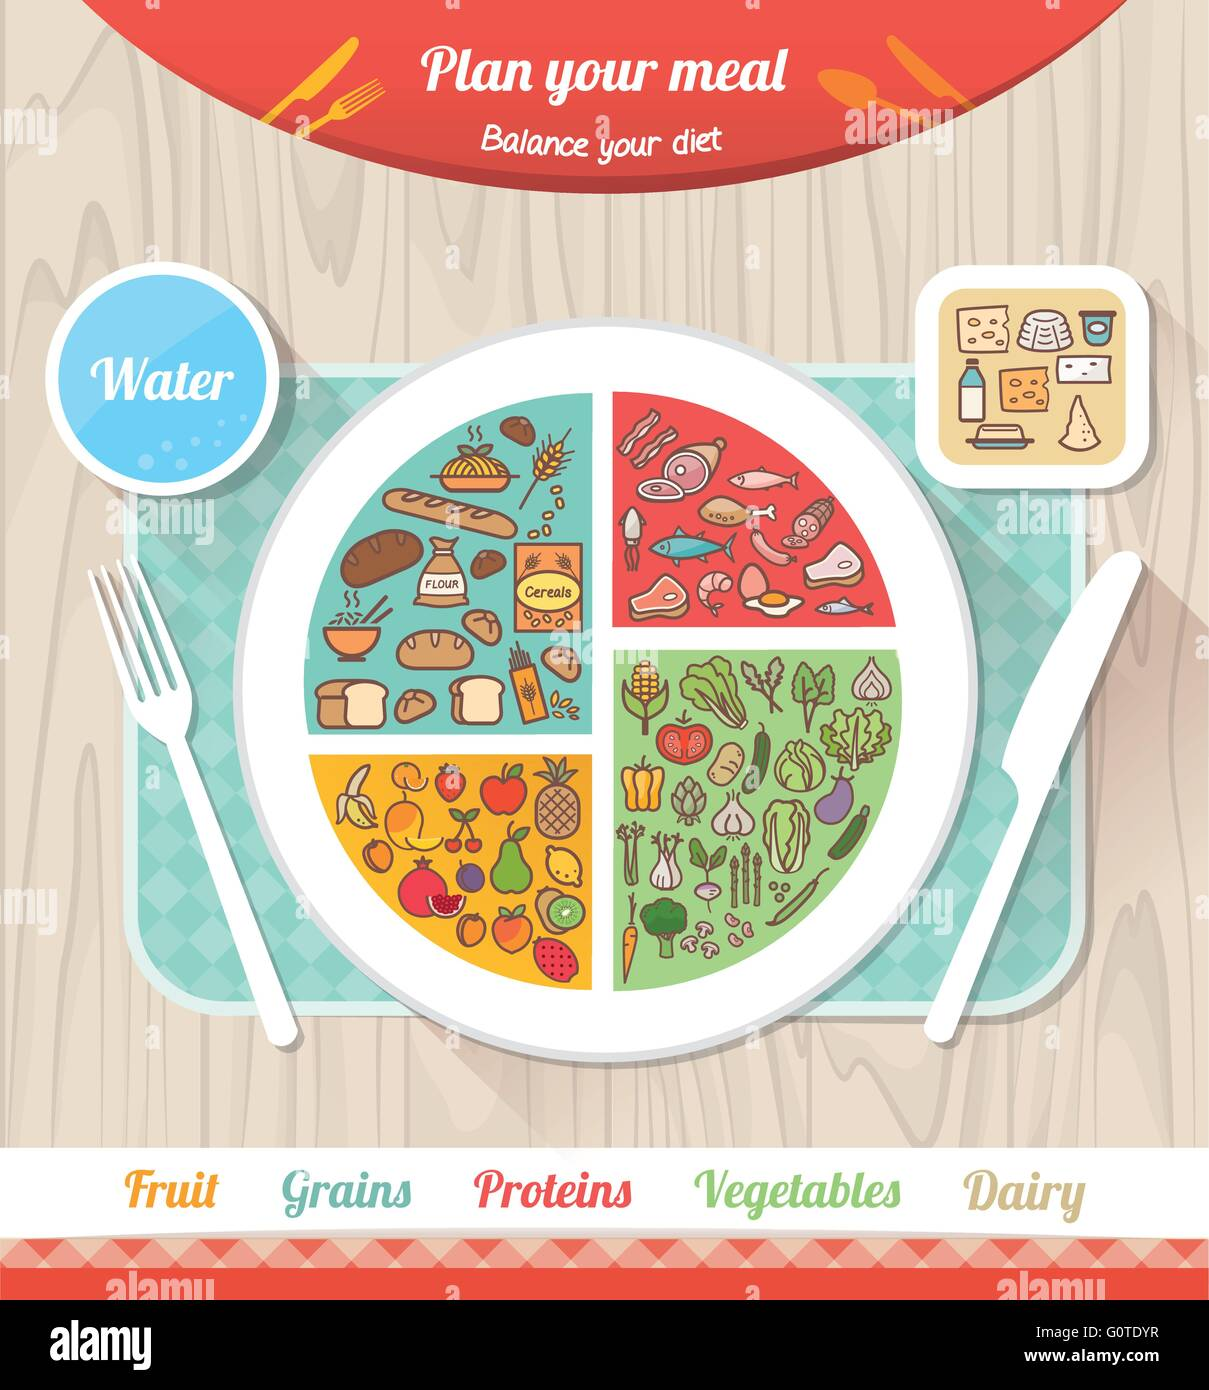 Plan your meal infographic with dish, chart and icons, healthy food and dieting concept - Stock Image